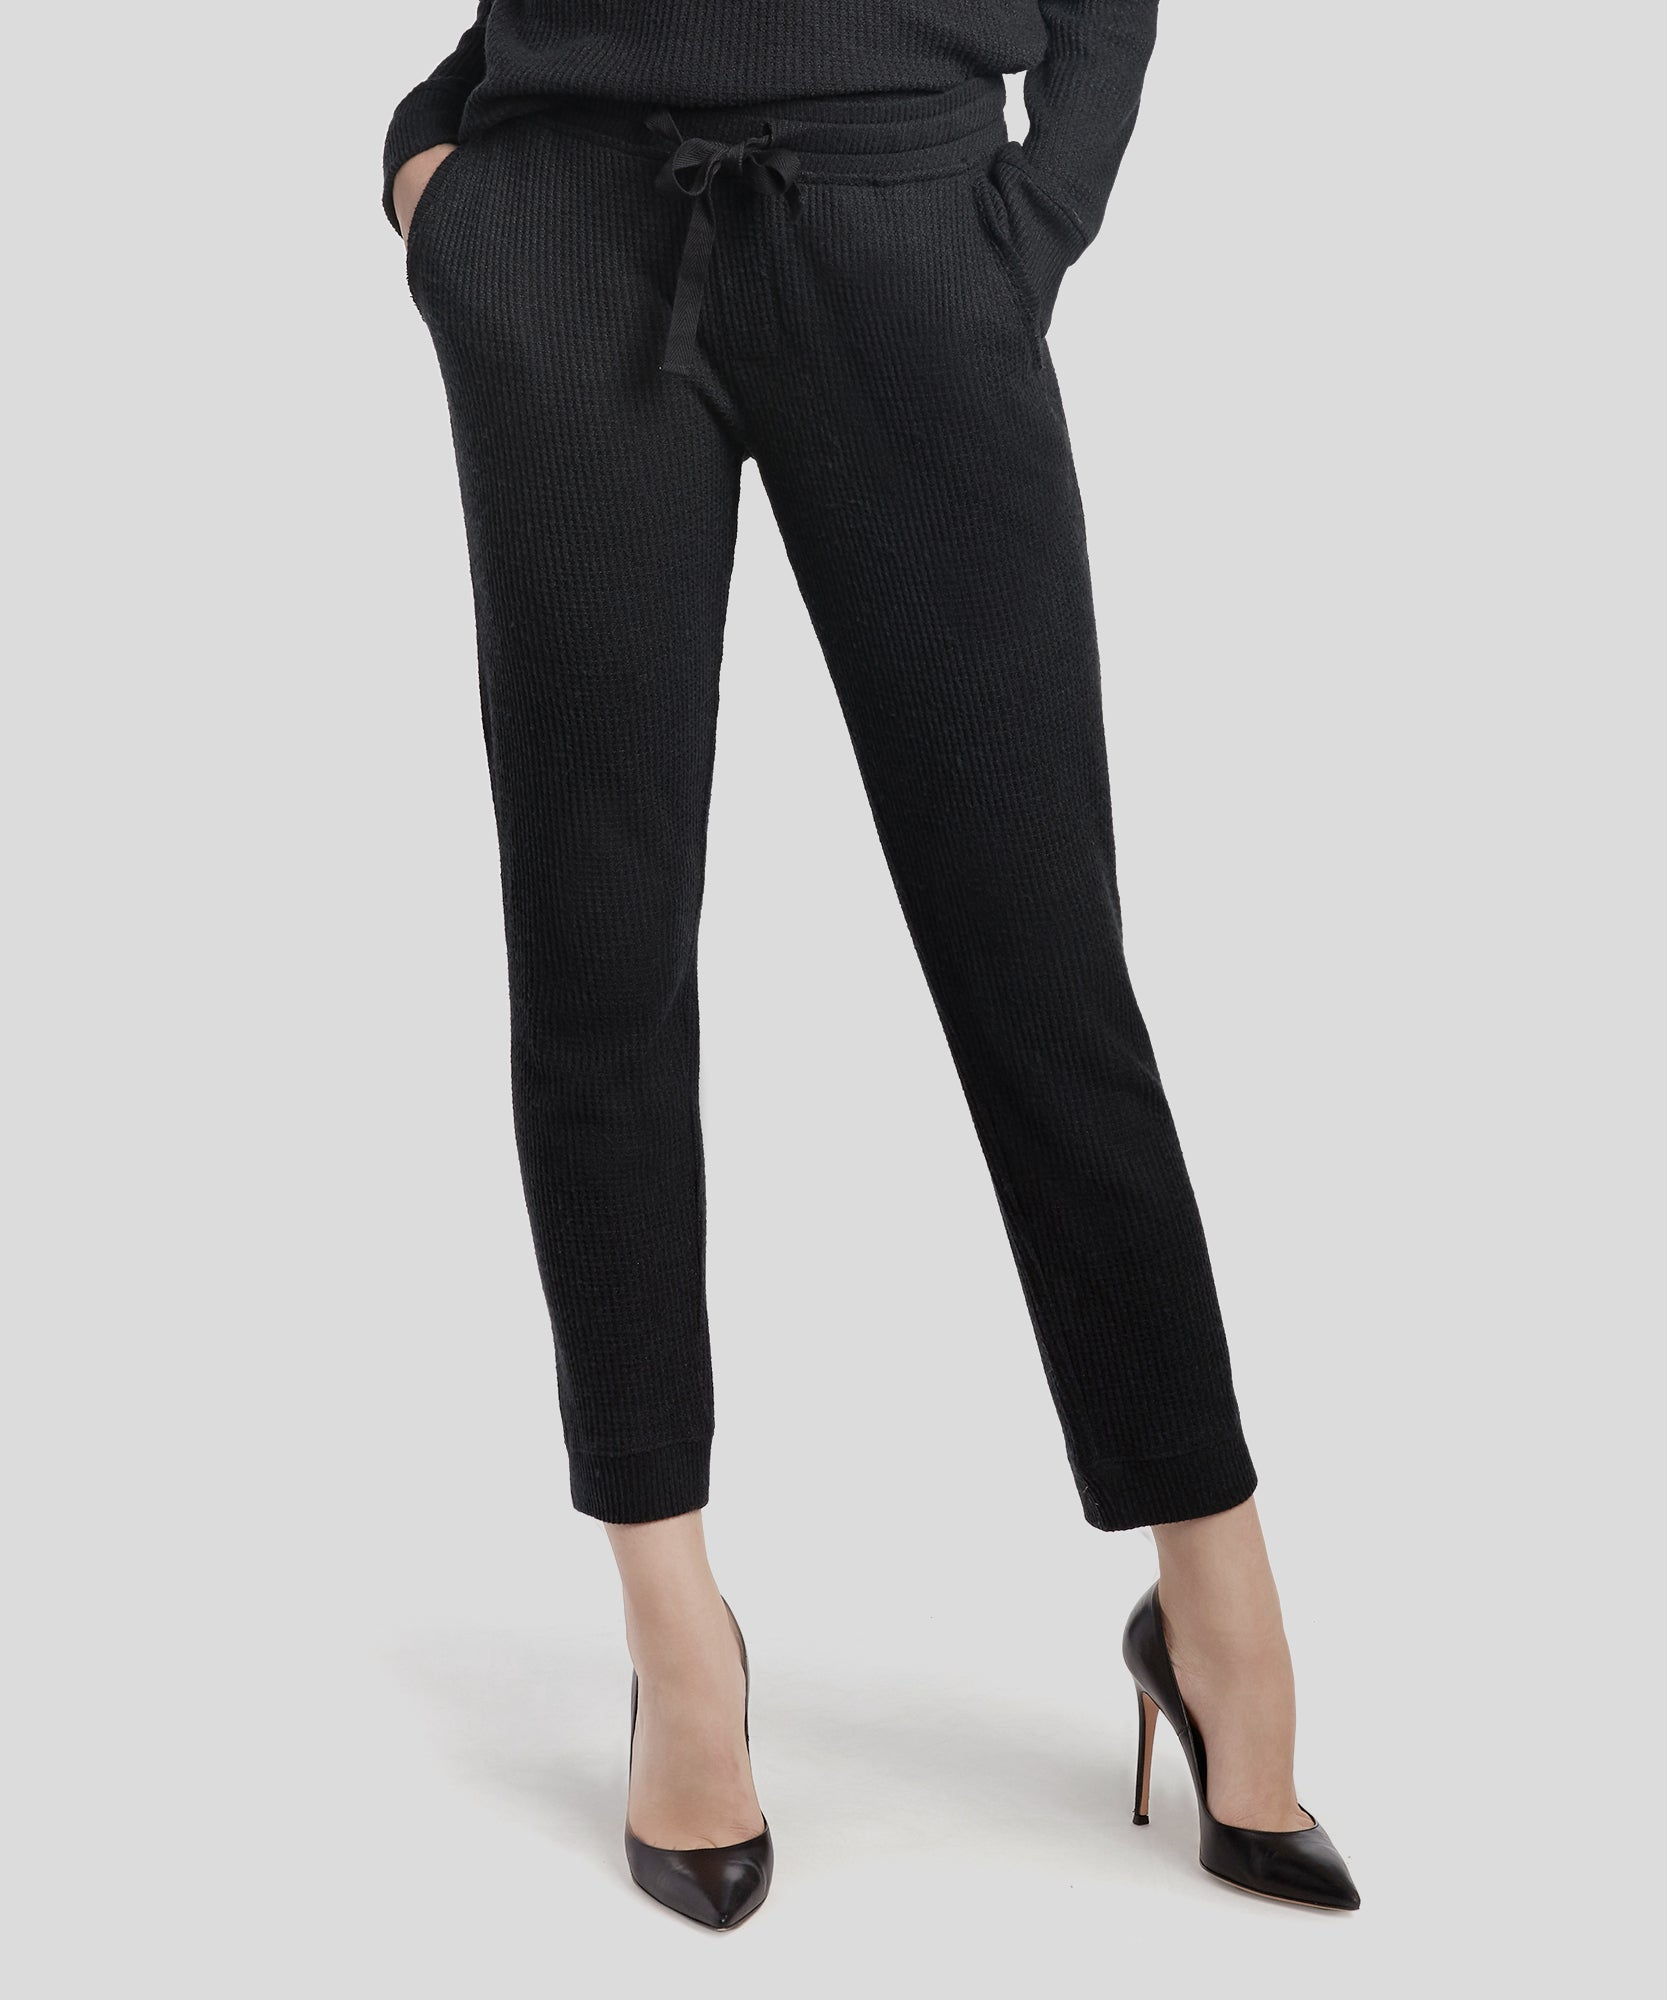 Black Waffle Pull-On Cropped Pants - Women's Luxe Loungewear by ATM Anthony Thomas Melillo